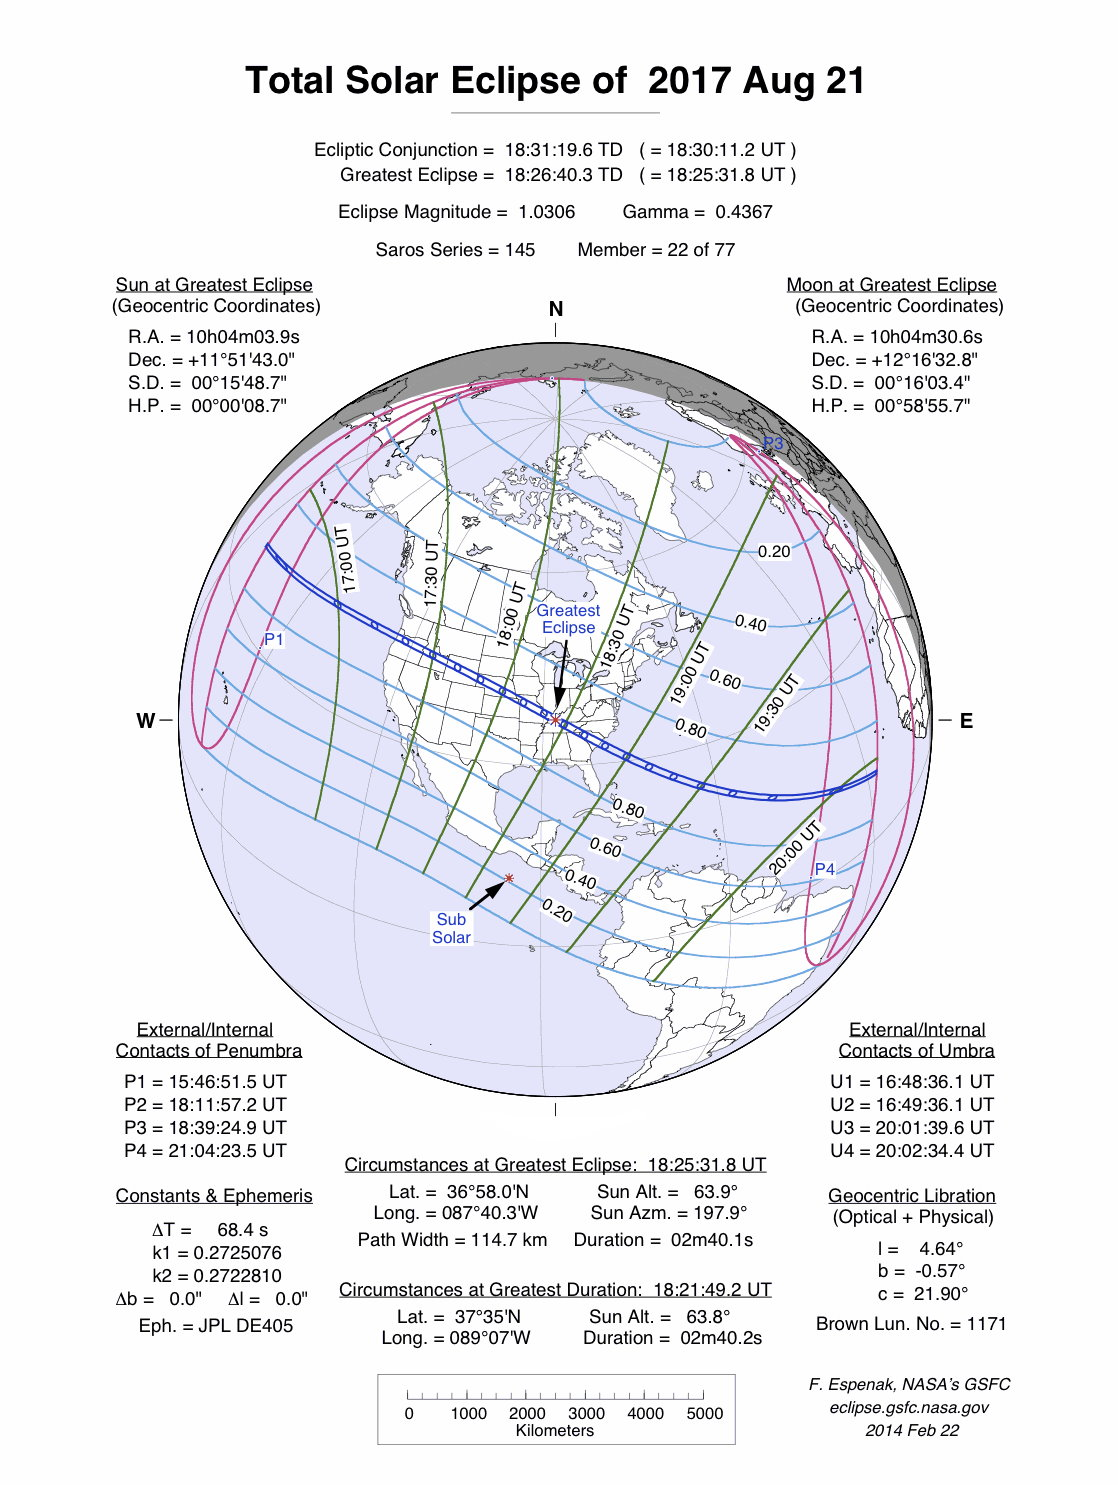 Total Solar Eclipse 20th August 2017 - NASA diagram by Fred Espenak